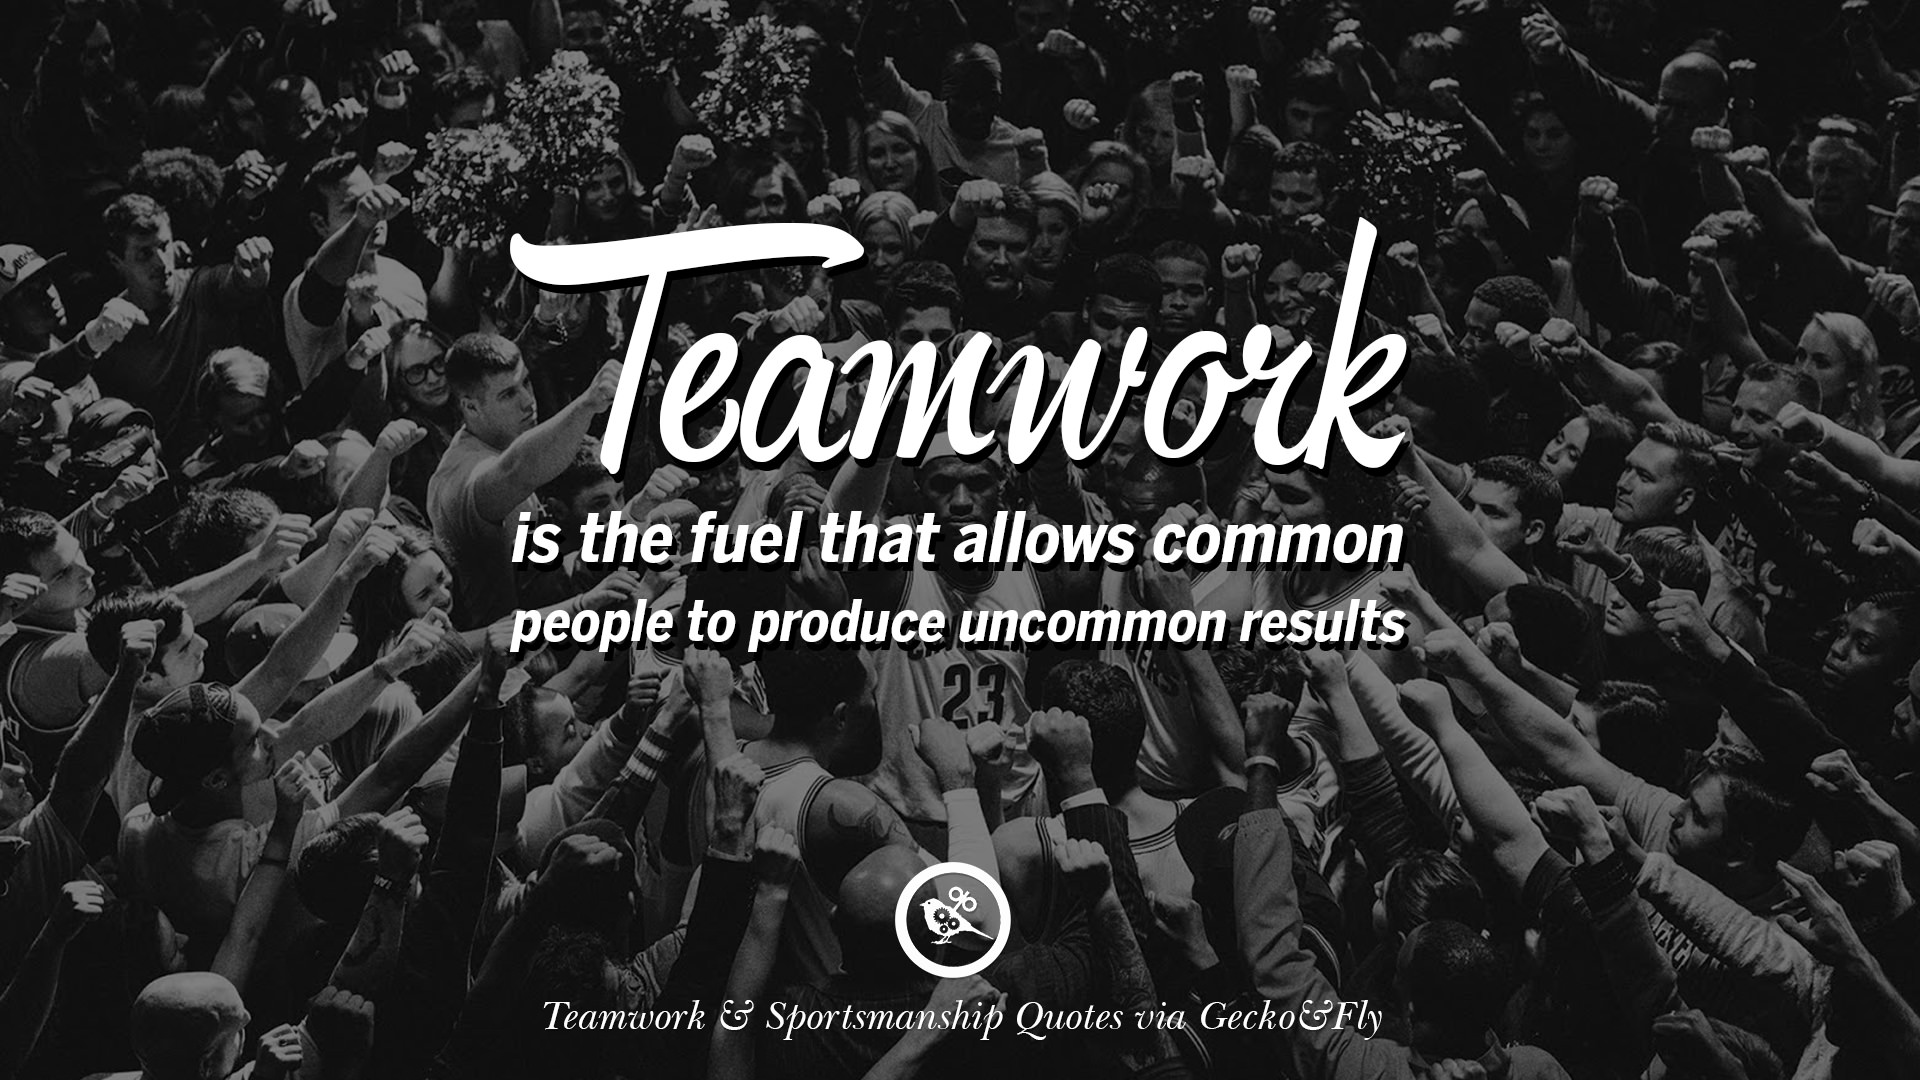 teamwork quotes sportsmanship team sports motivational inspirational football results soccer baseball uncommon allows produce fuel common hockey volleyball golf saying